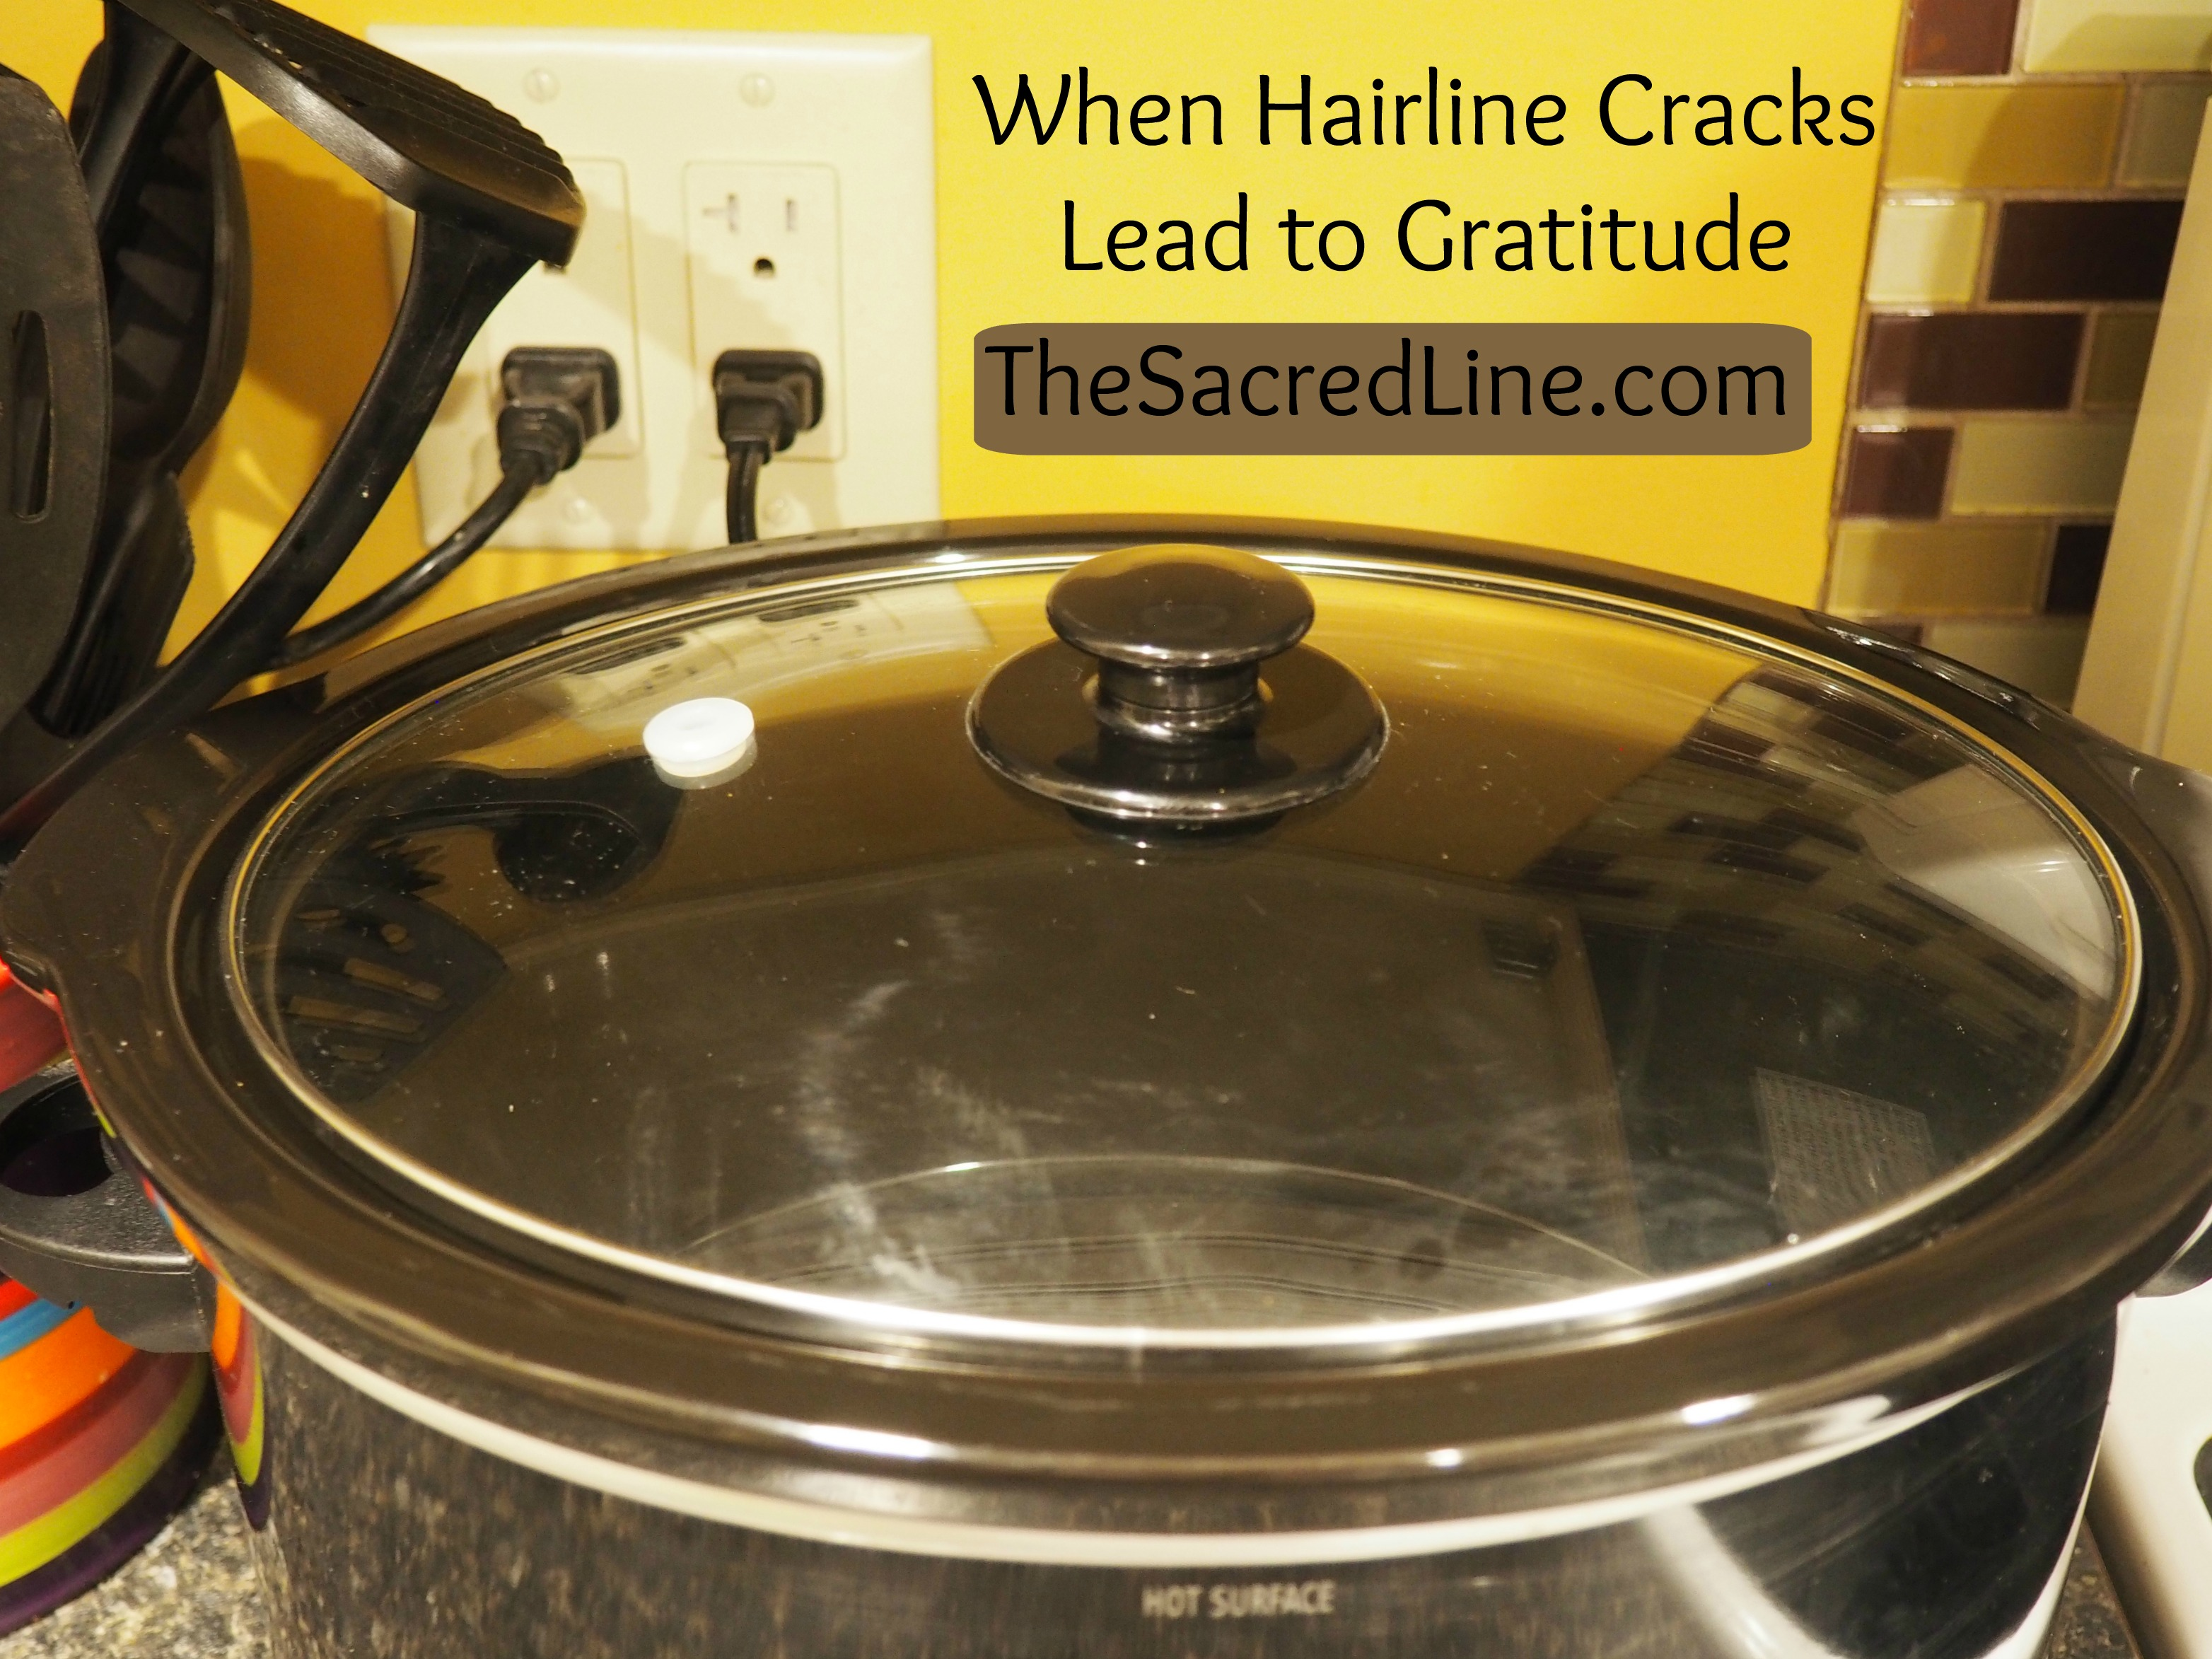 Hairline Cracks to Gratitude